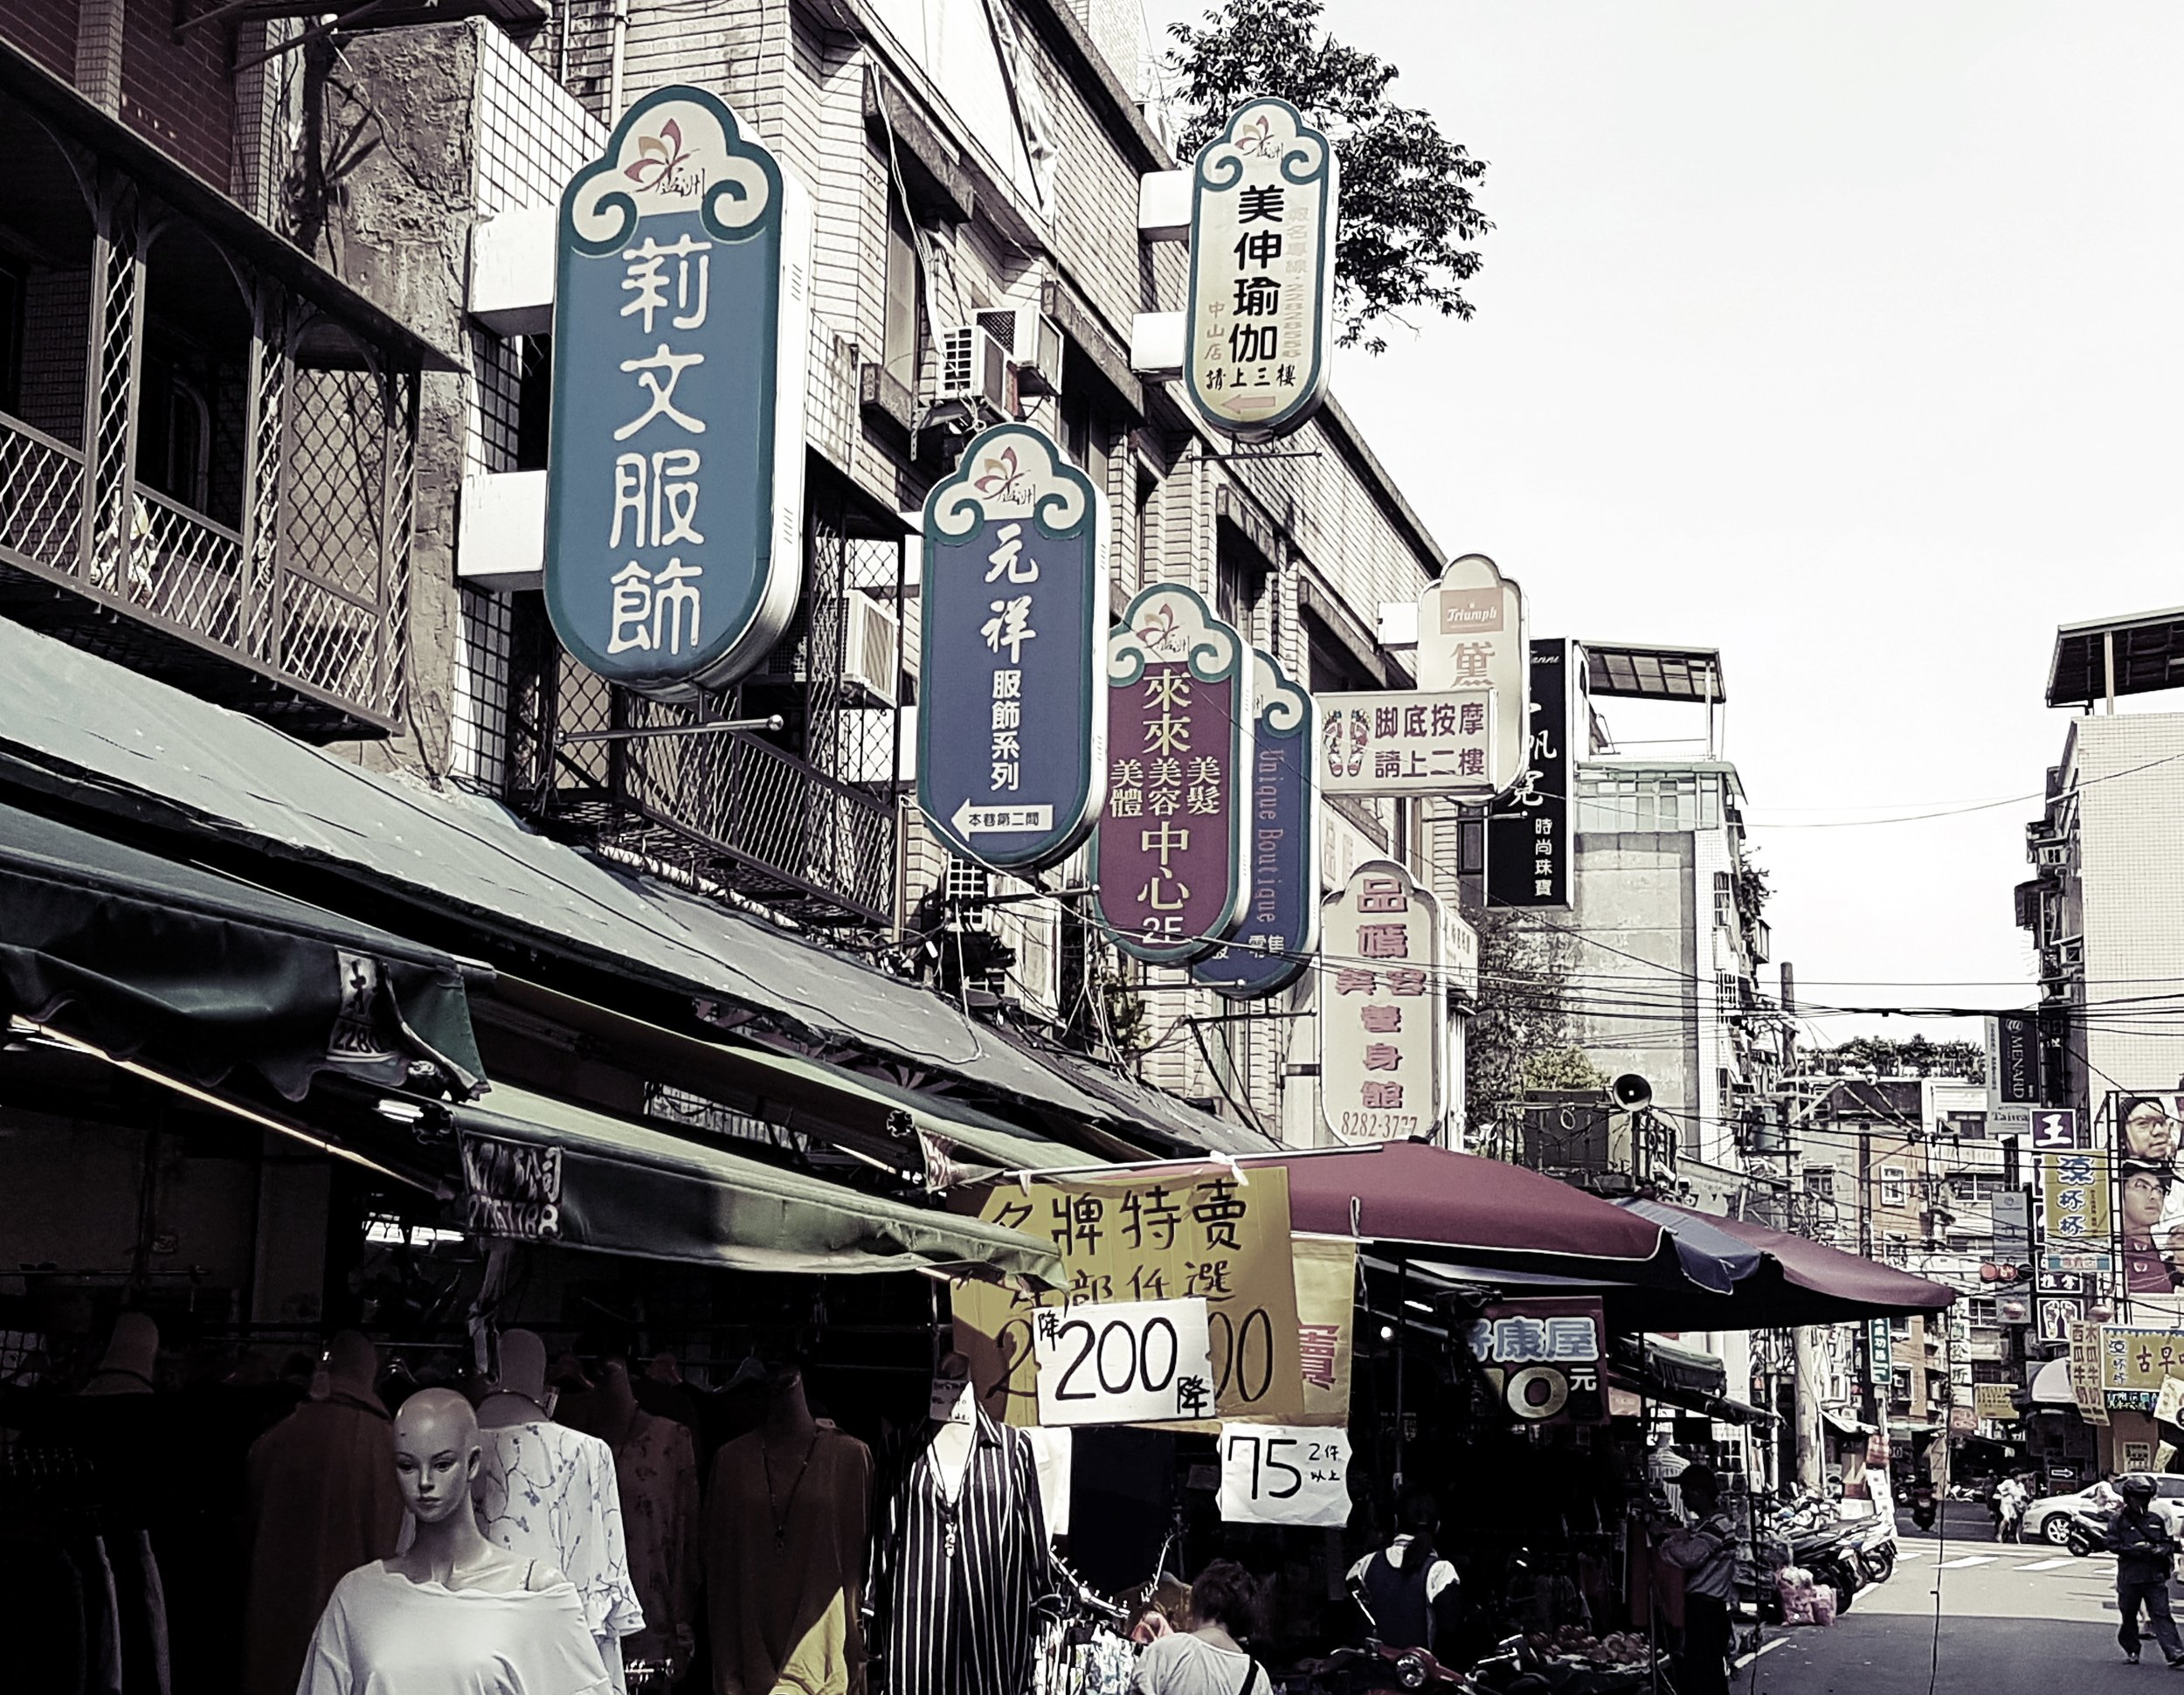 Luzhou has a night market of course, but it doesn't seem like there's anything out of the ordinary about it